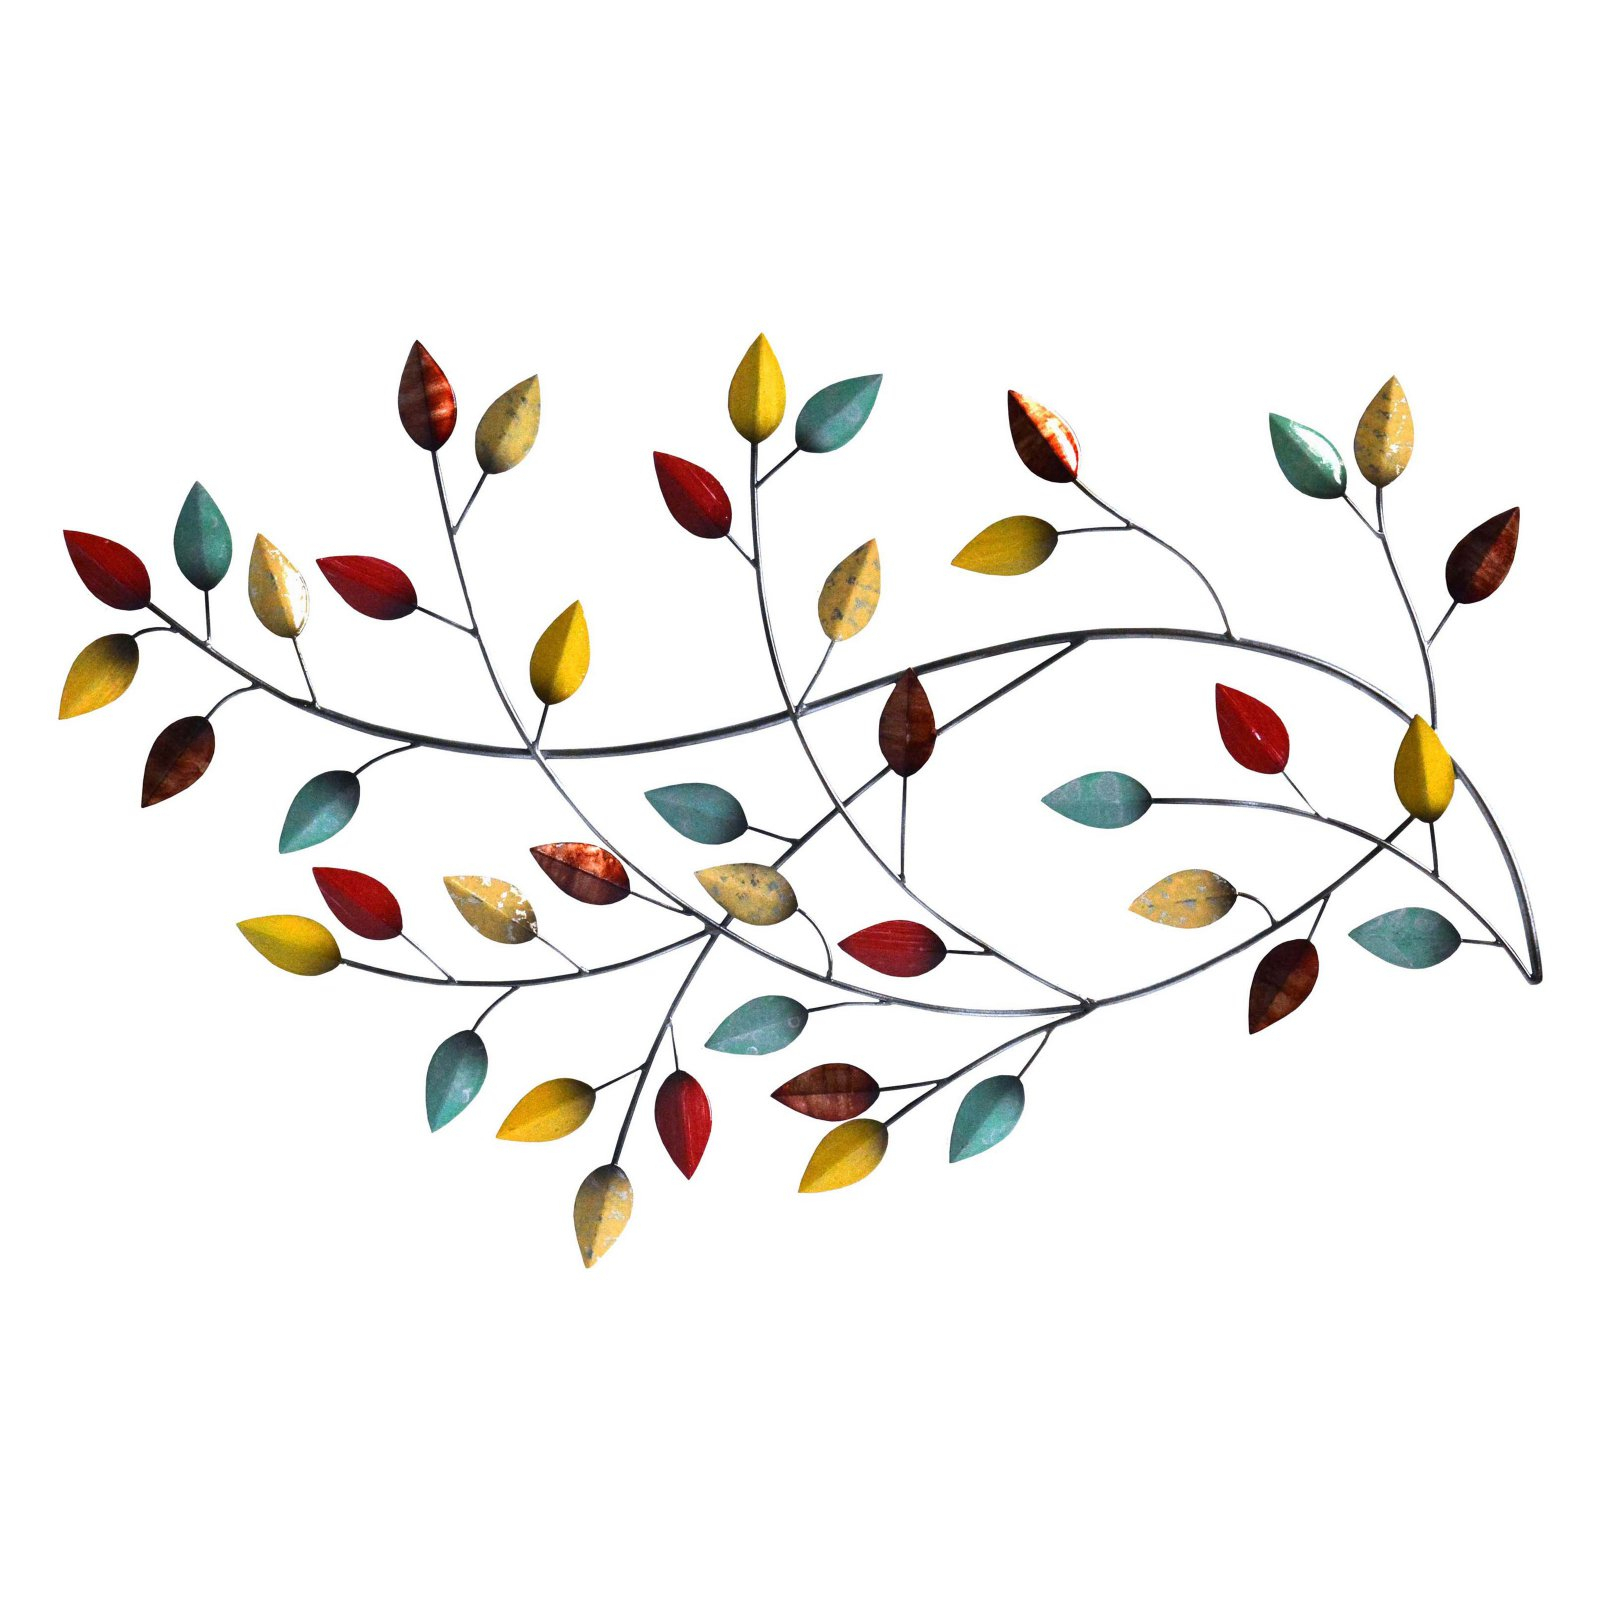 Best And Newest Stratton Home Decor Autumn Blowing Leaves Wall Decor – Walmart Within Blowing Leaves Wall Decor (Gallery 13 of 20)